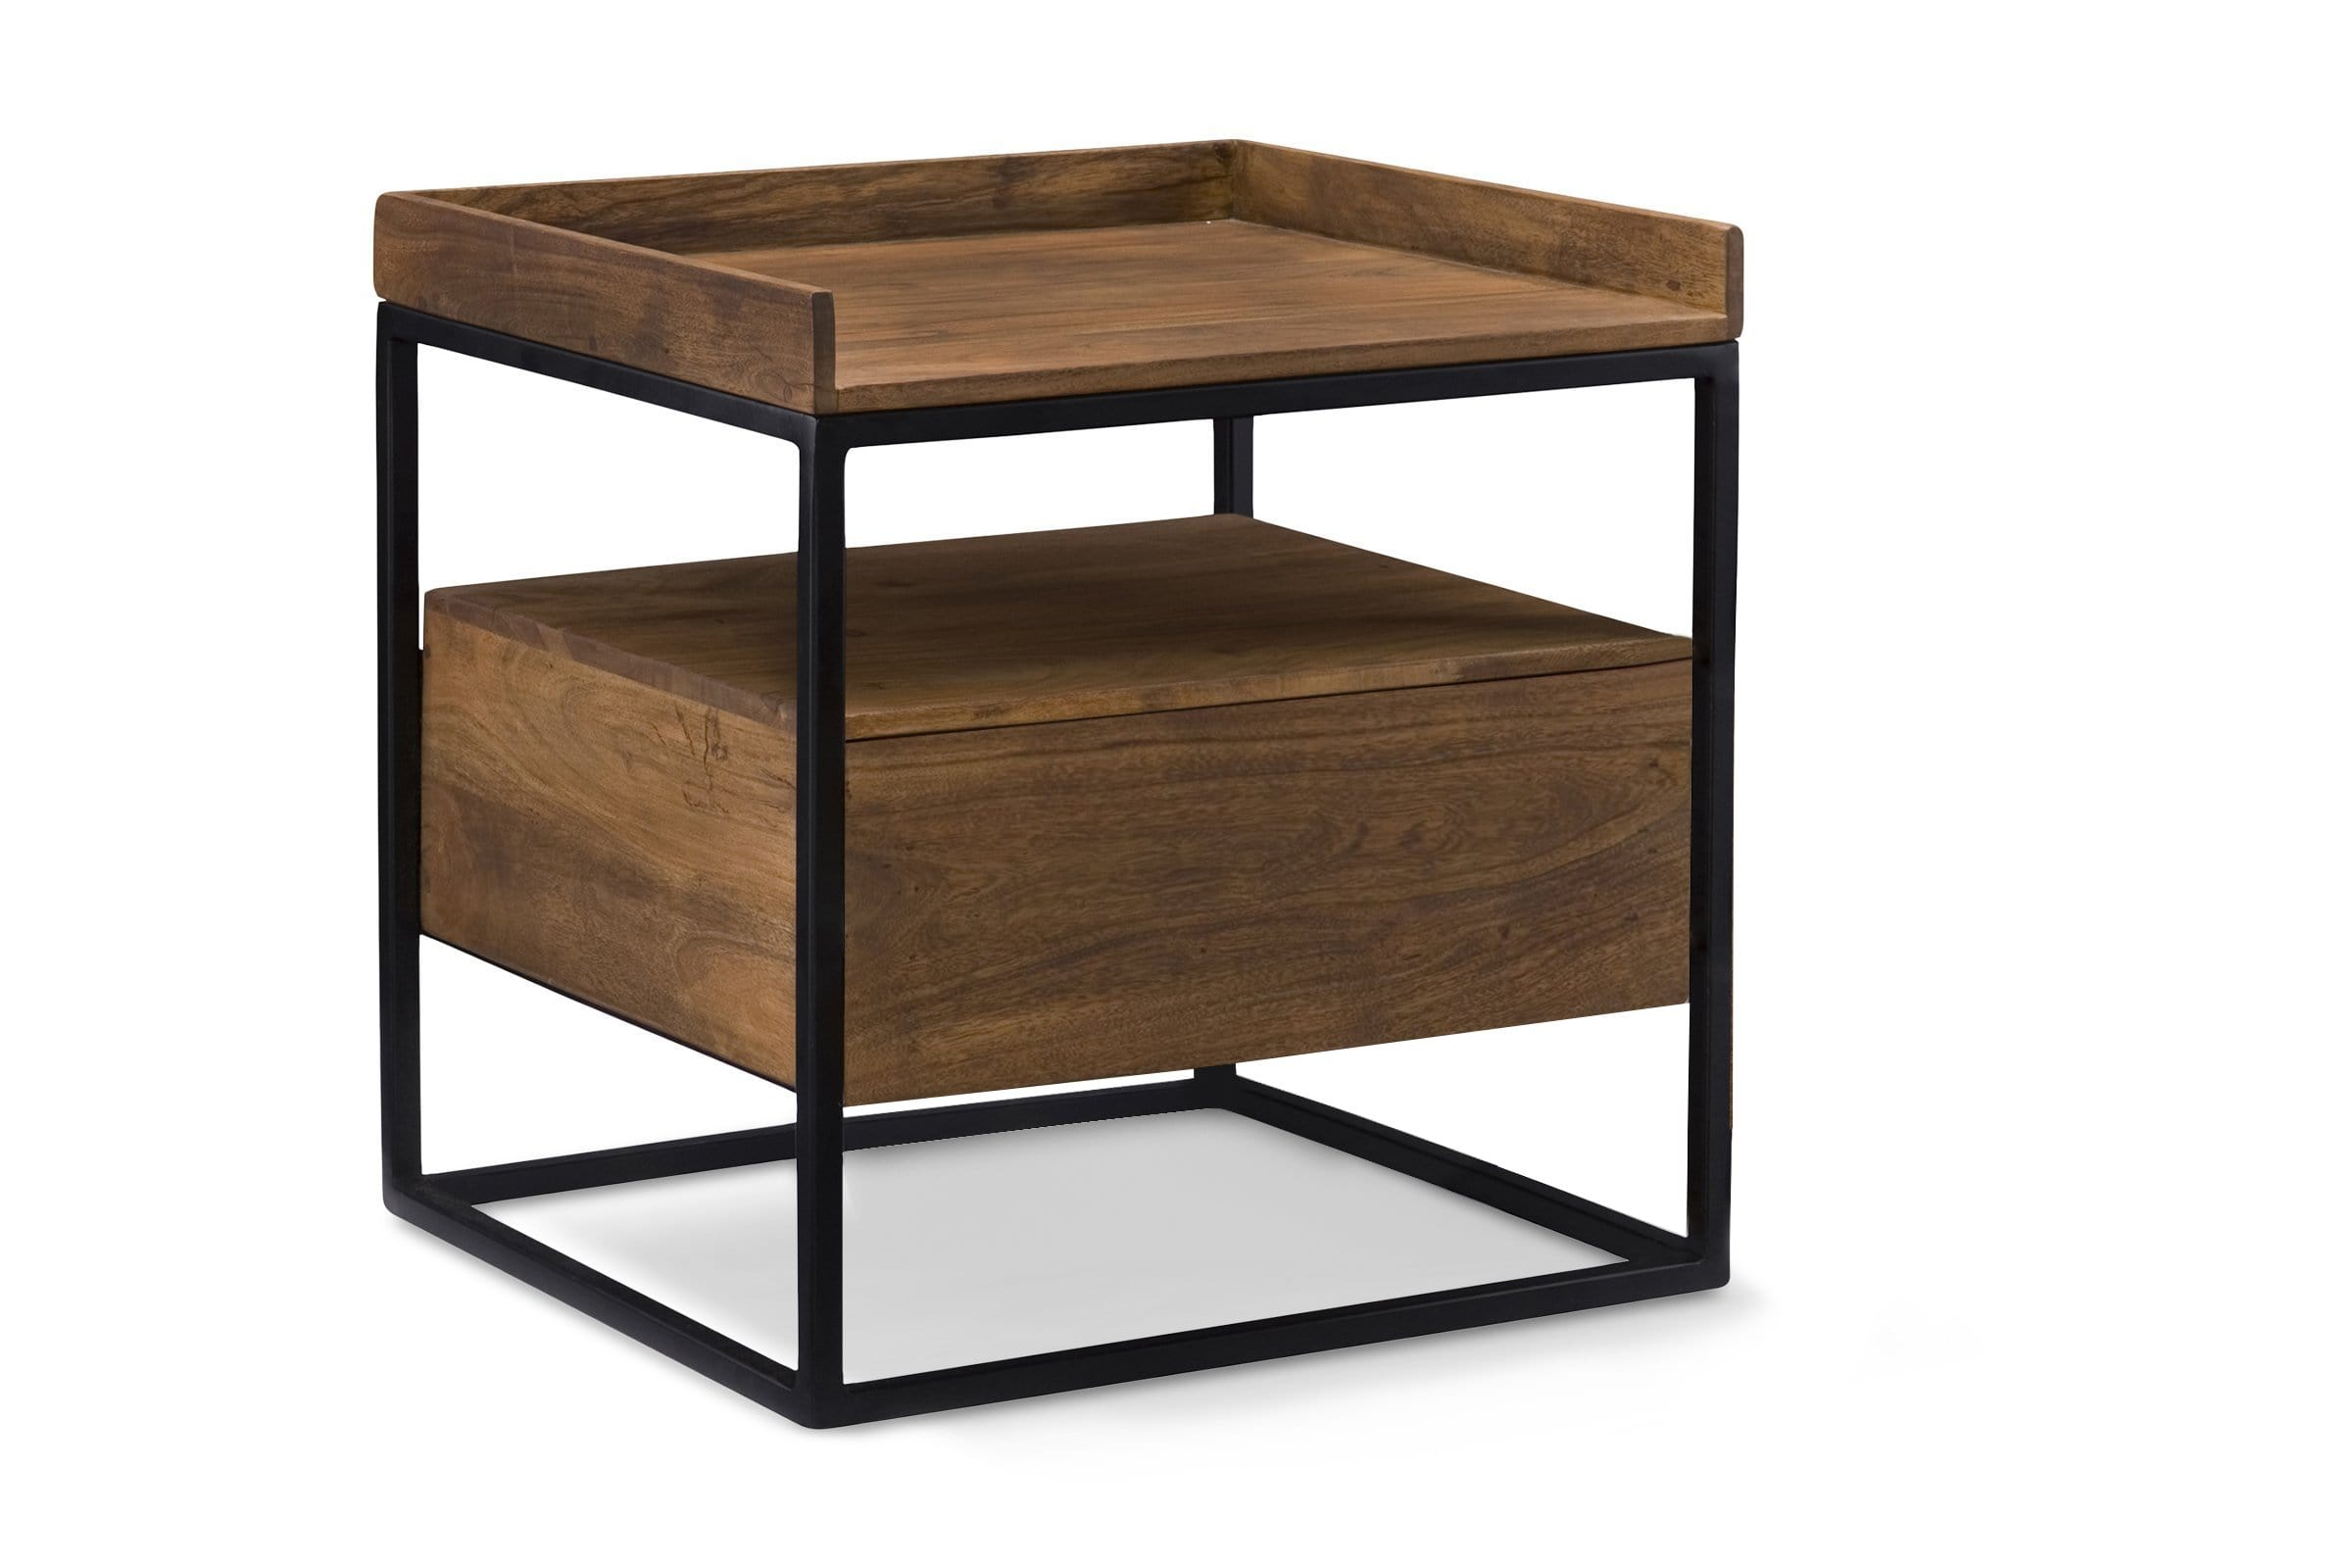 Bannack Side Table - Modern Side Table - Sold by Apt2B